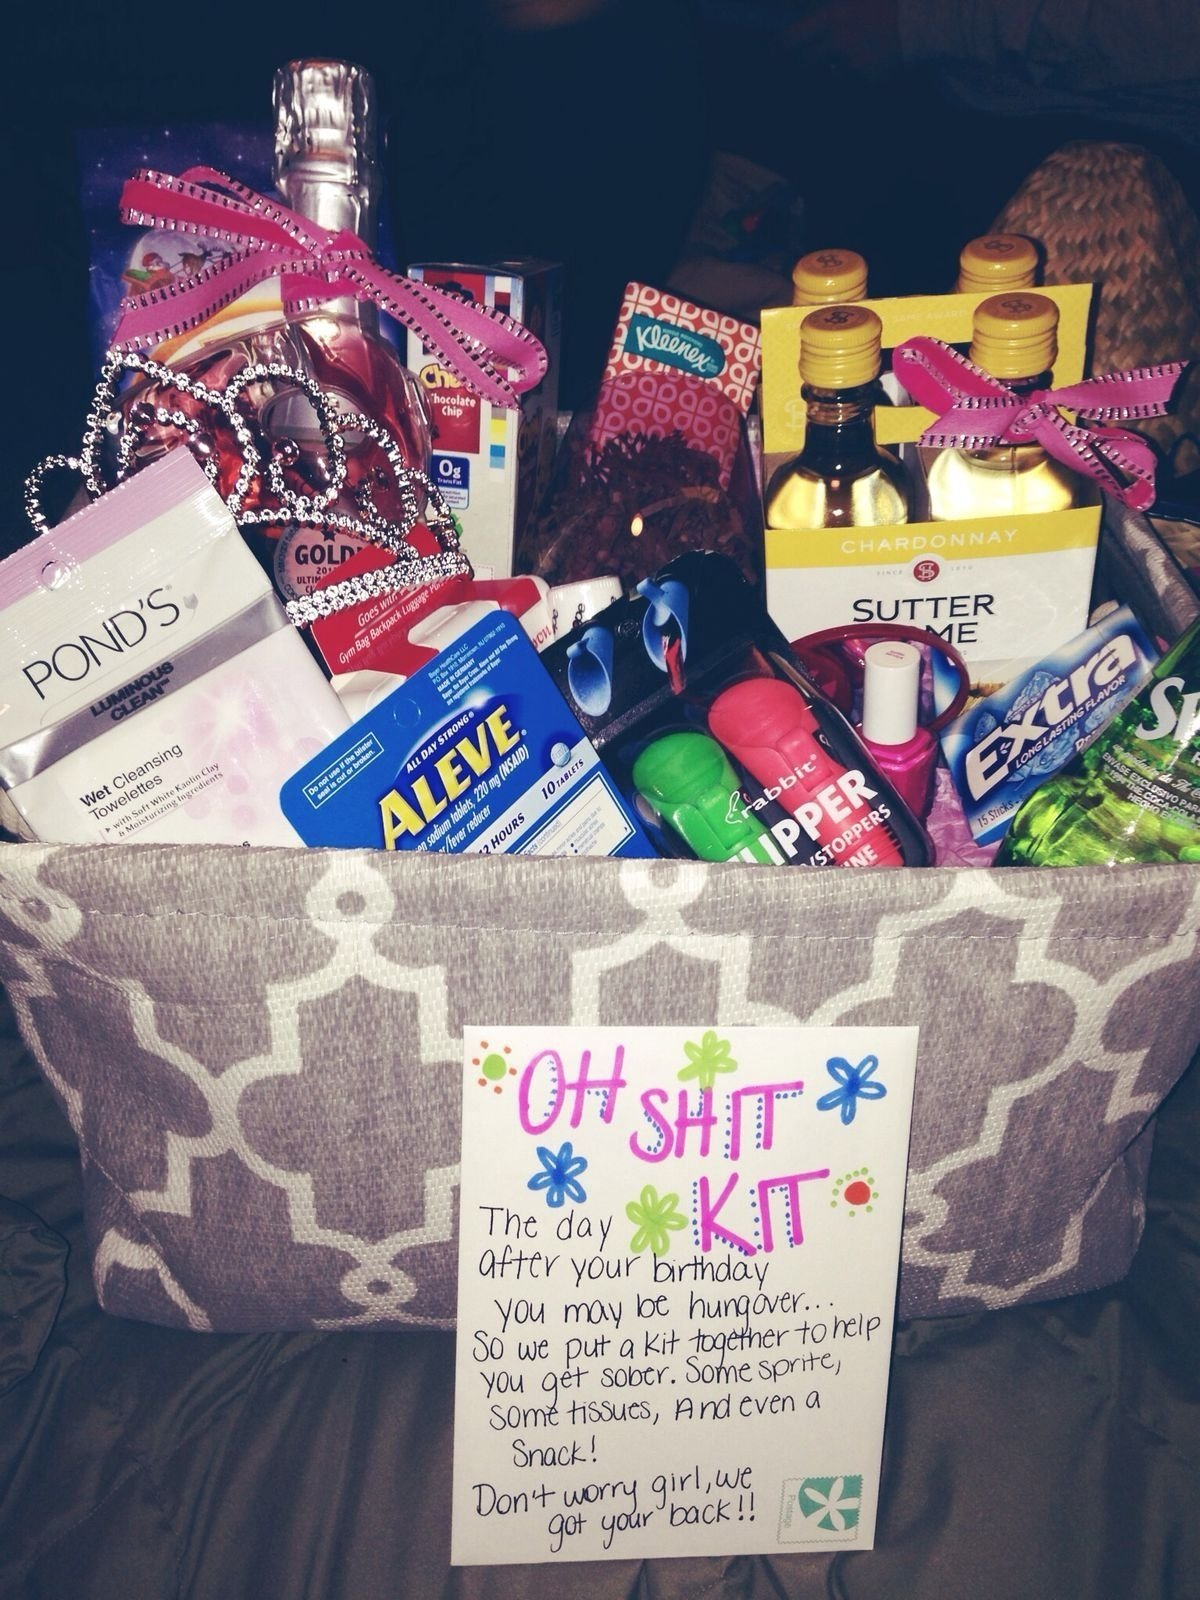 10 Most Recommended Cute Gift Ideas For Friends oh shit kit cute idea only 2 more years till k can legally drink 1 2021